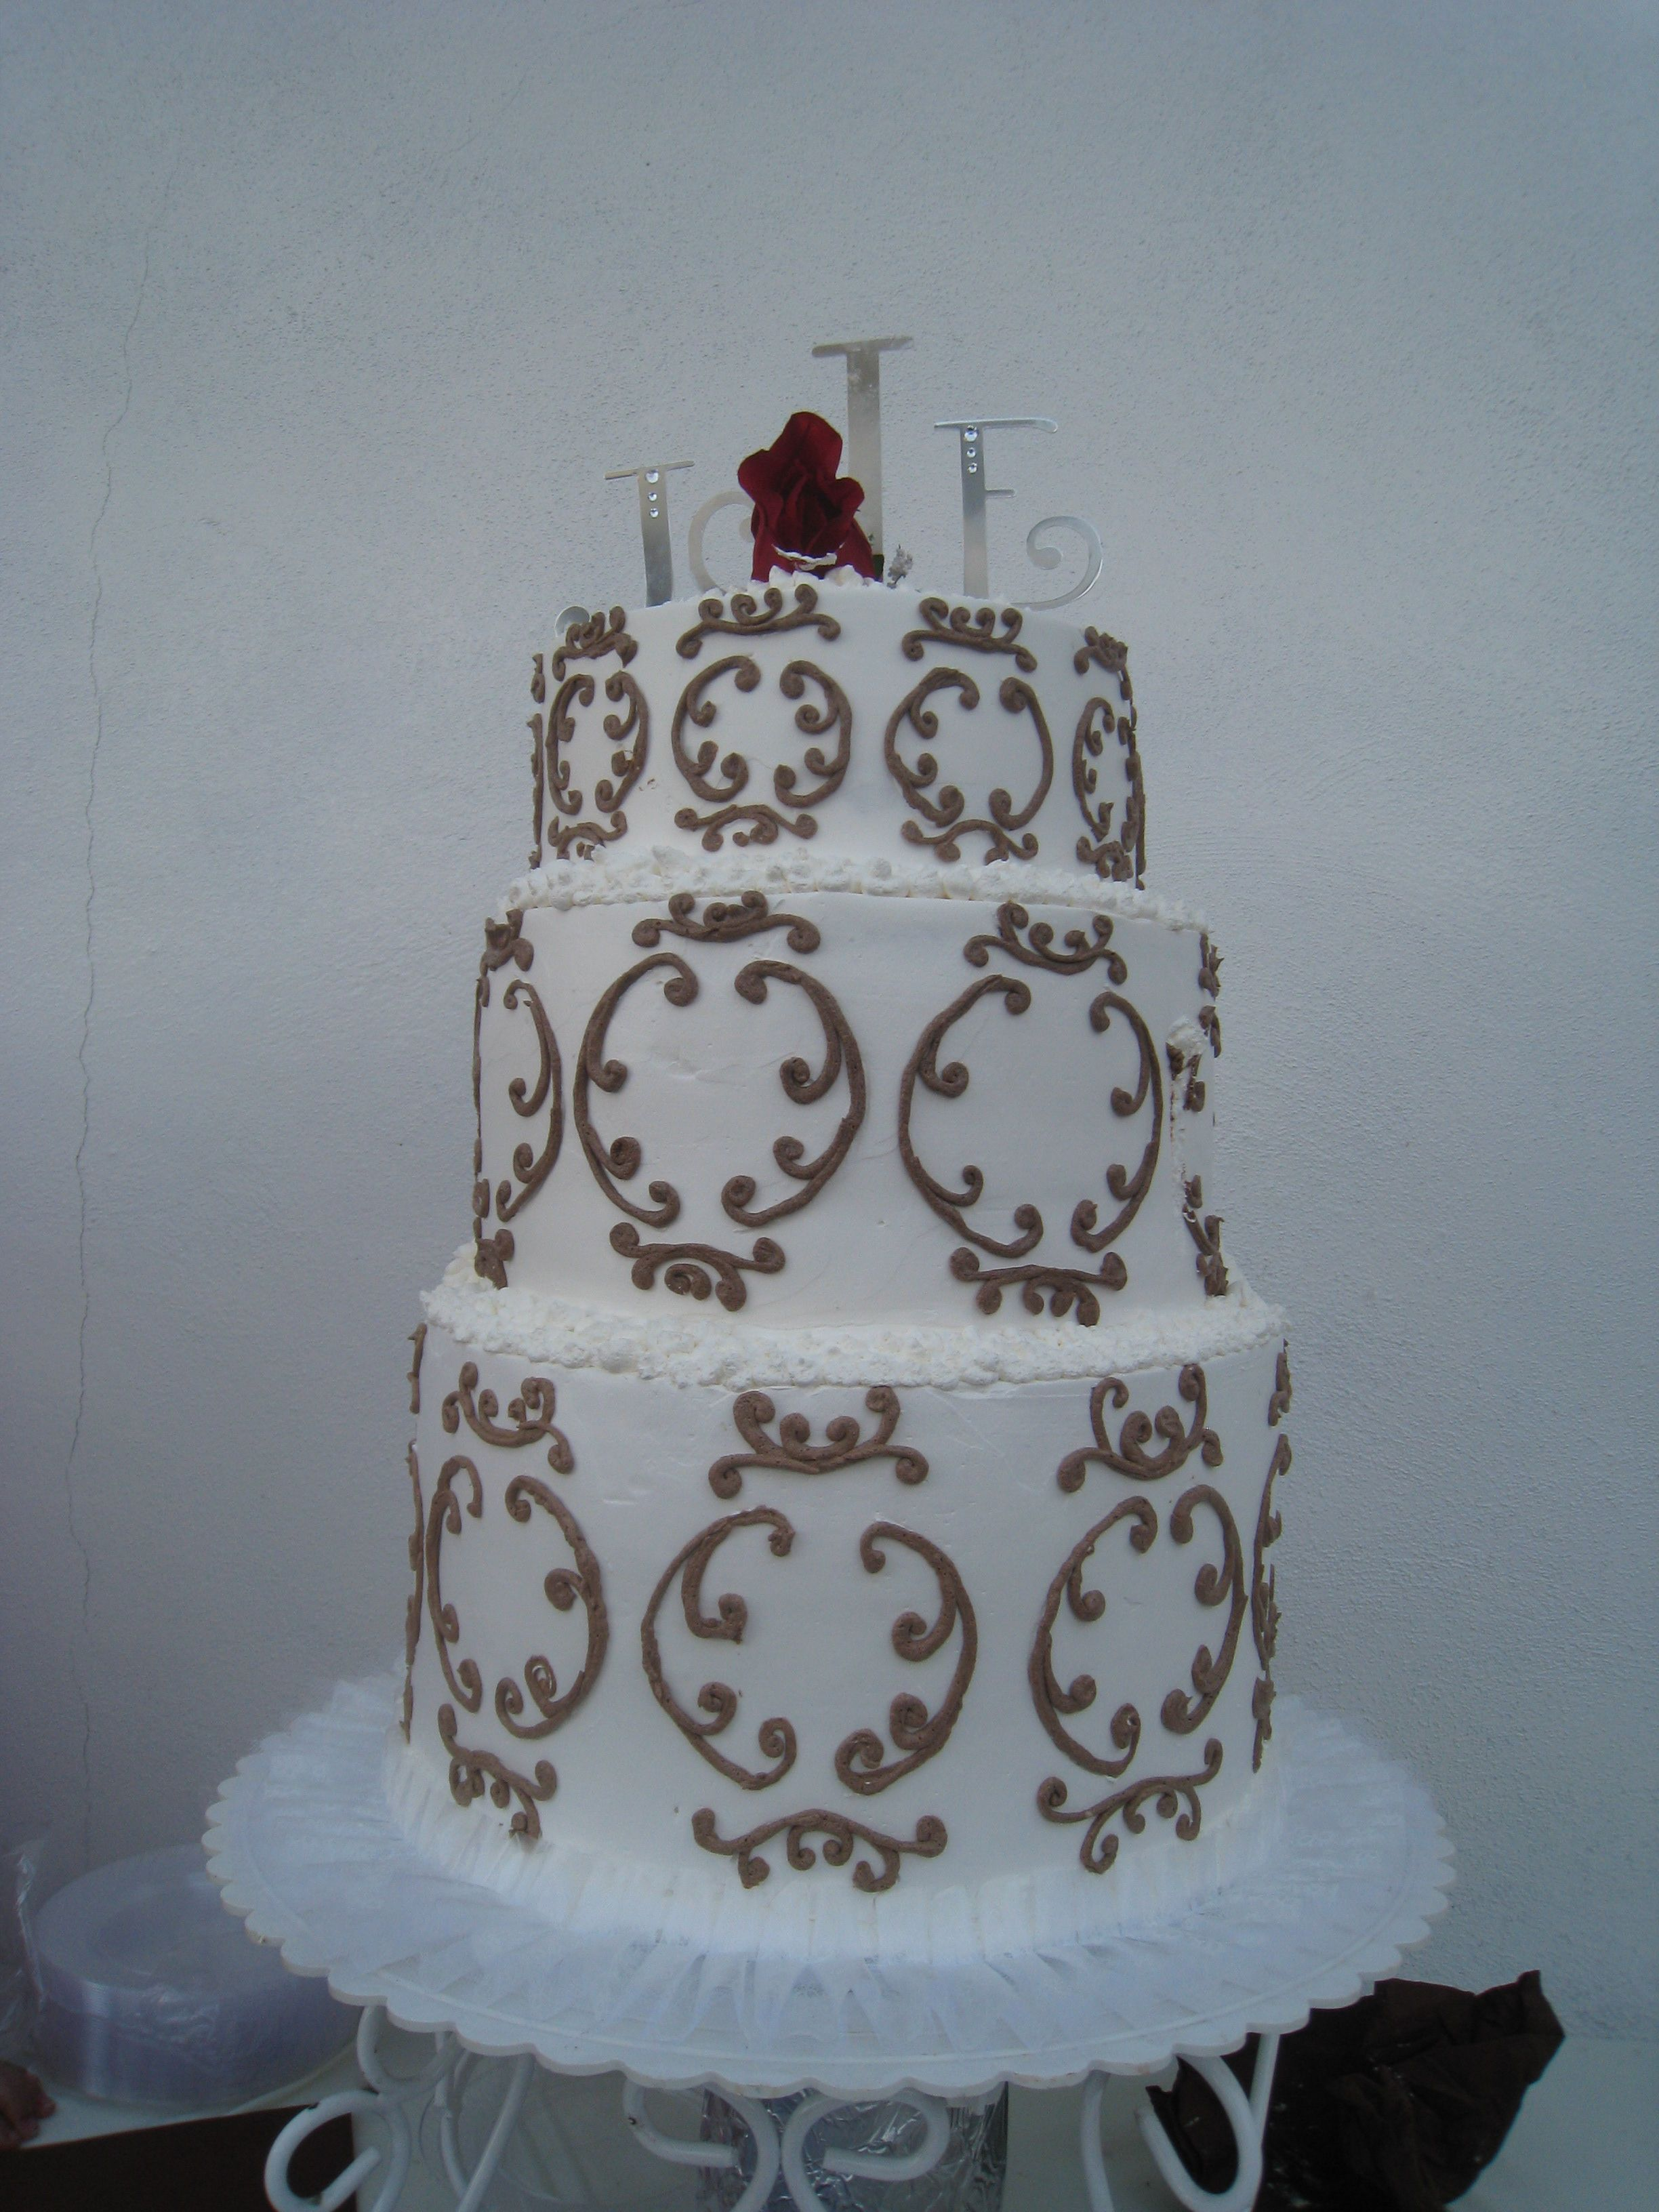 Topper of the cake with the first letter of your name and the first